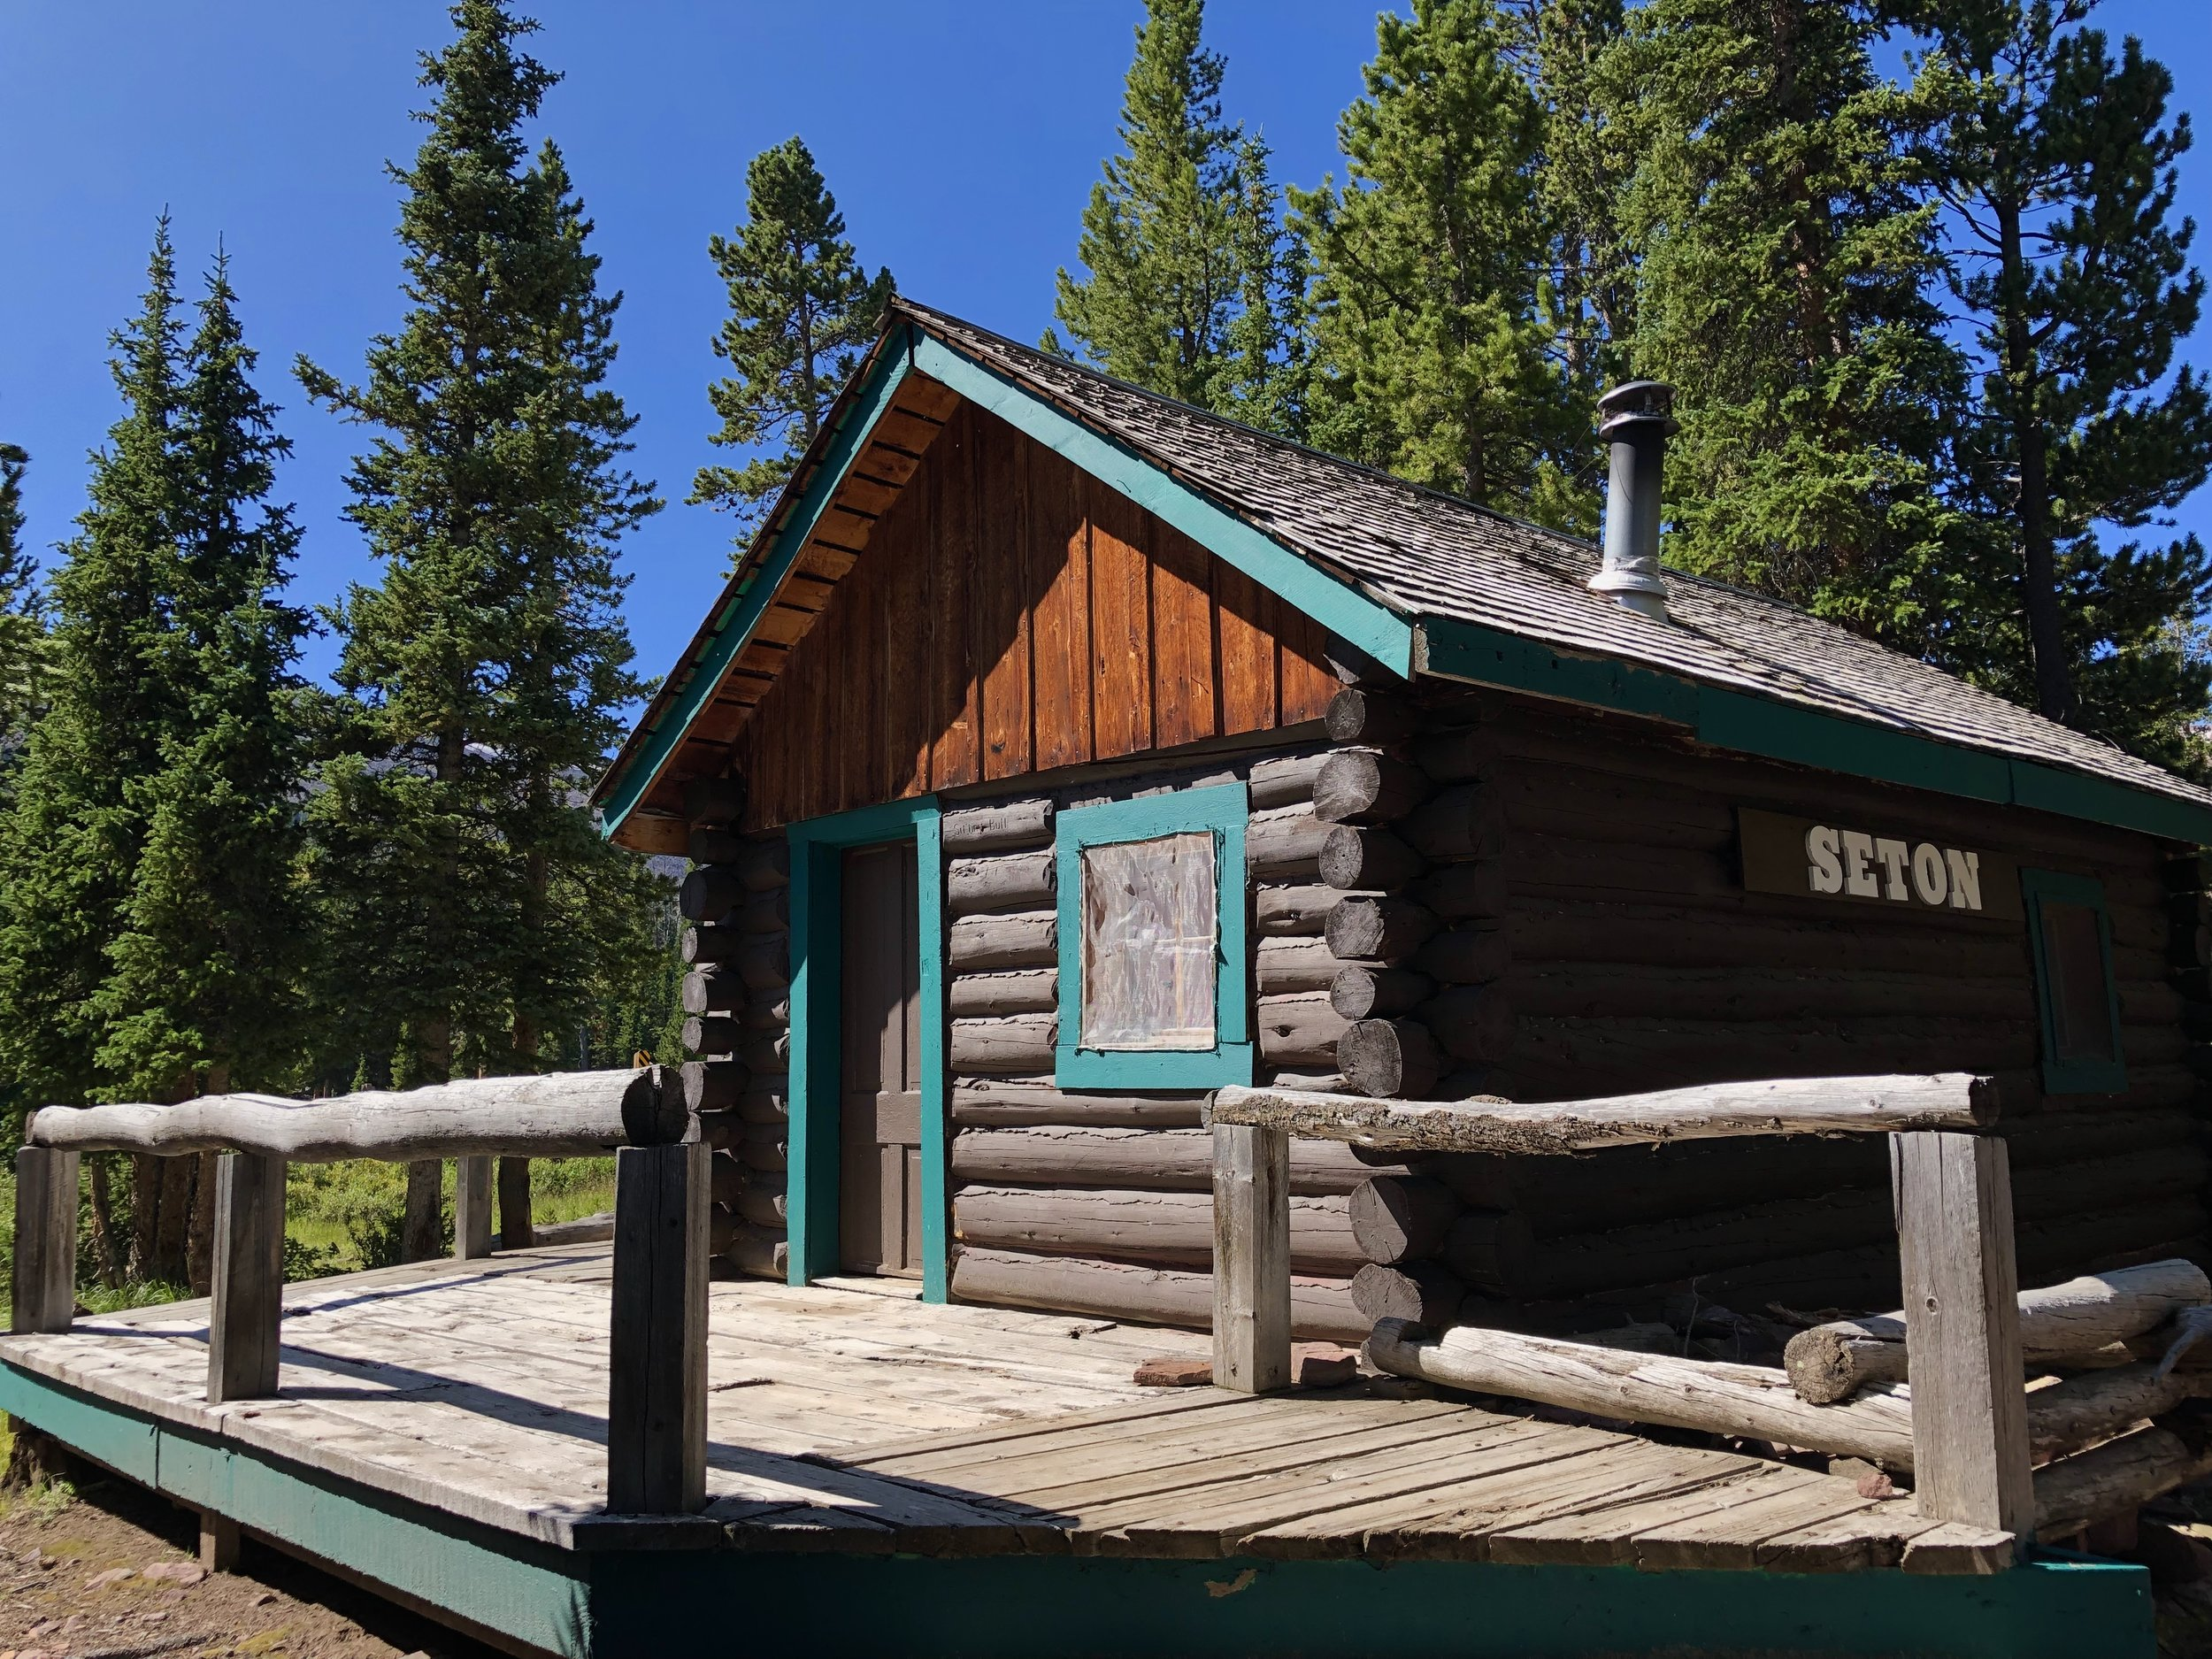 Seton - Sleeps 4 - 237 sq/ft Two Bedroom CabinSingle Queen Bed In Each RoomPrivate Rooms Separated By DoorPricingSunday - Thursday | $85/NightFriday & Saturday | $100/Night